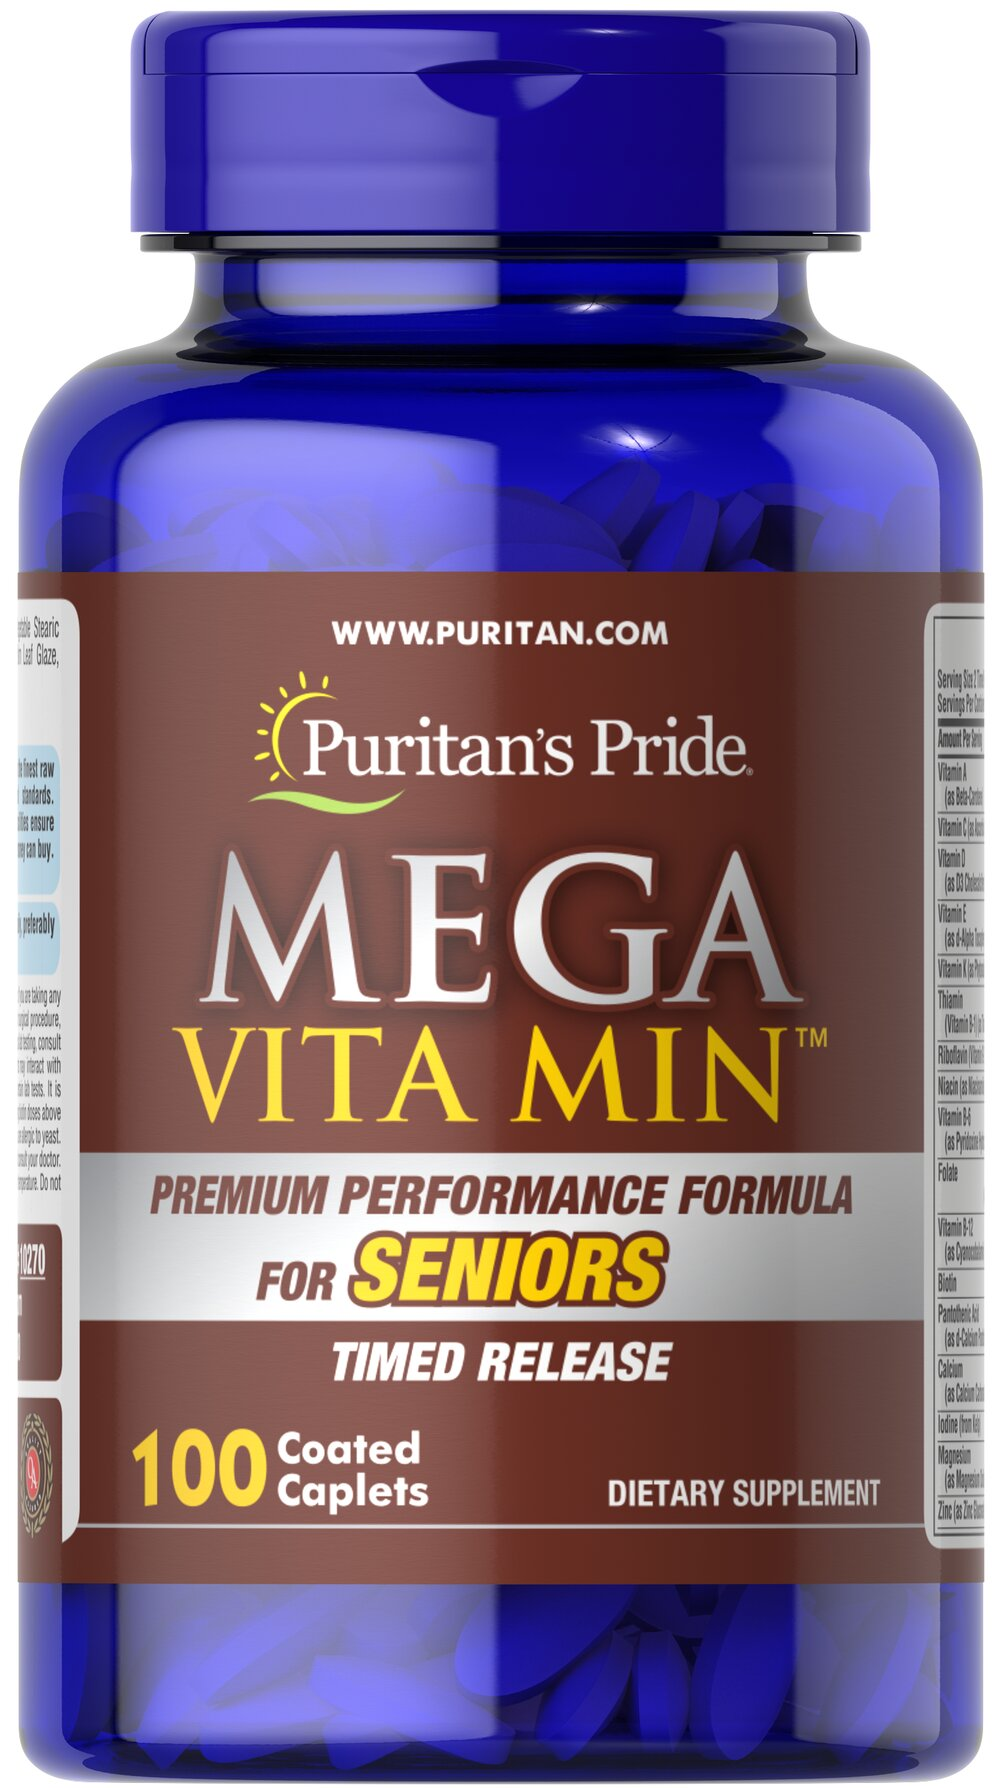 Mega Vita Min™ Multivitamin for Seniors Timed Release <p>Mega Vita Min™ for Seniors combines a bounty of vitamins and minerals, with a cornucopia of herbs to create a specialized formula specifically designed for maturing adults.  Start reaping the benefits of a timed-release vitamin geared for your needs.</p> 100 Coated Caplets  $20.99